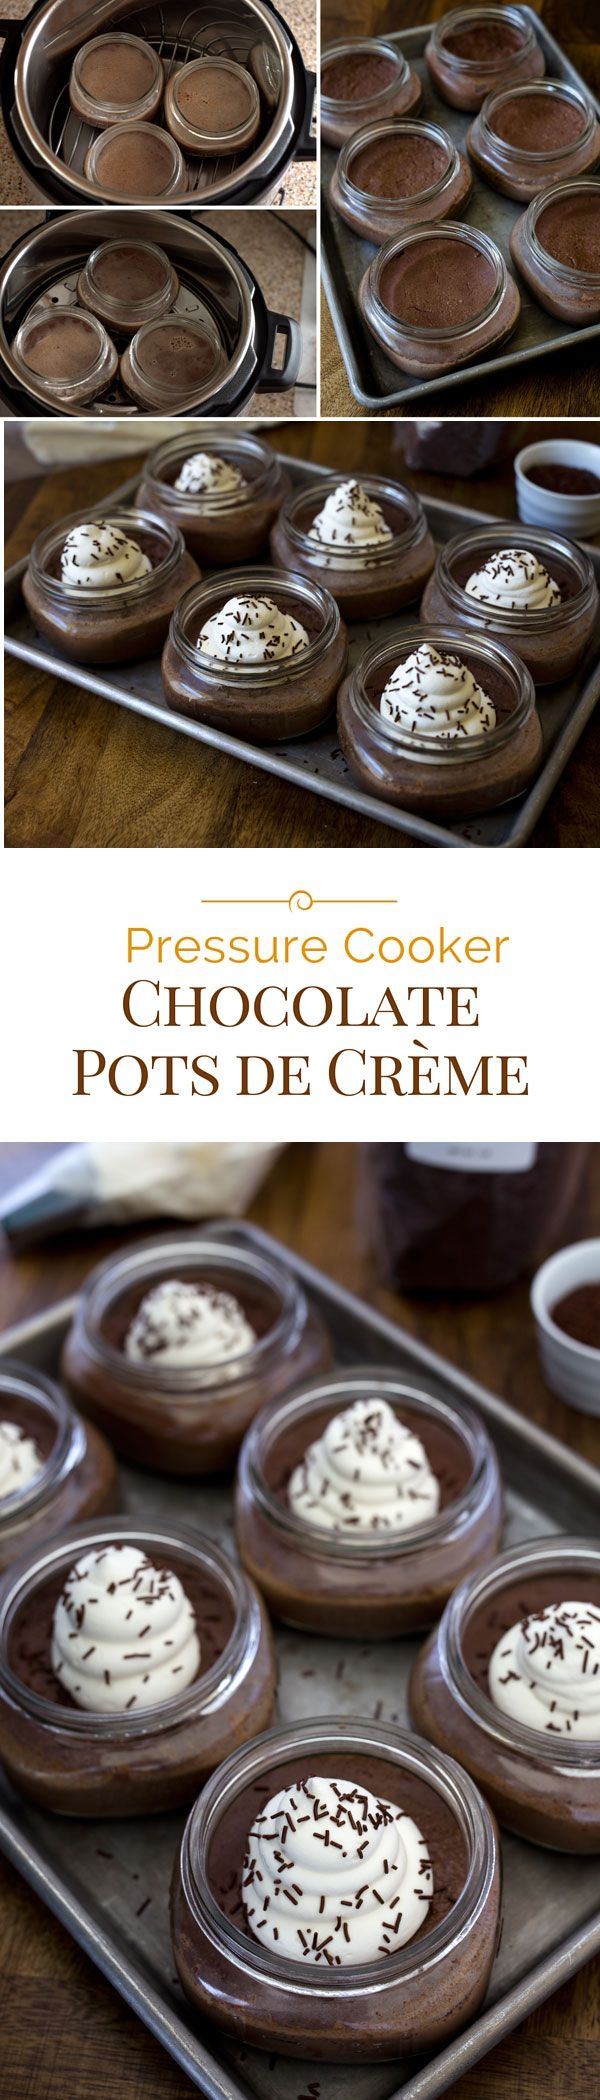 17 Best ideas about Pressure Cooker Cake on Pinterest ...